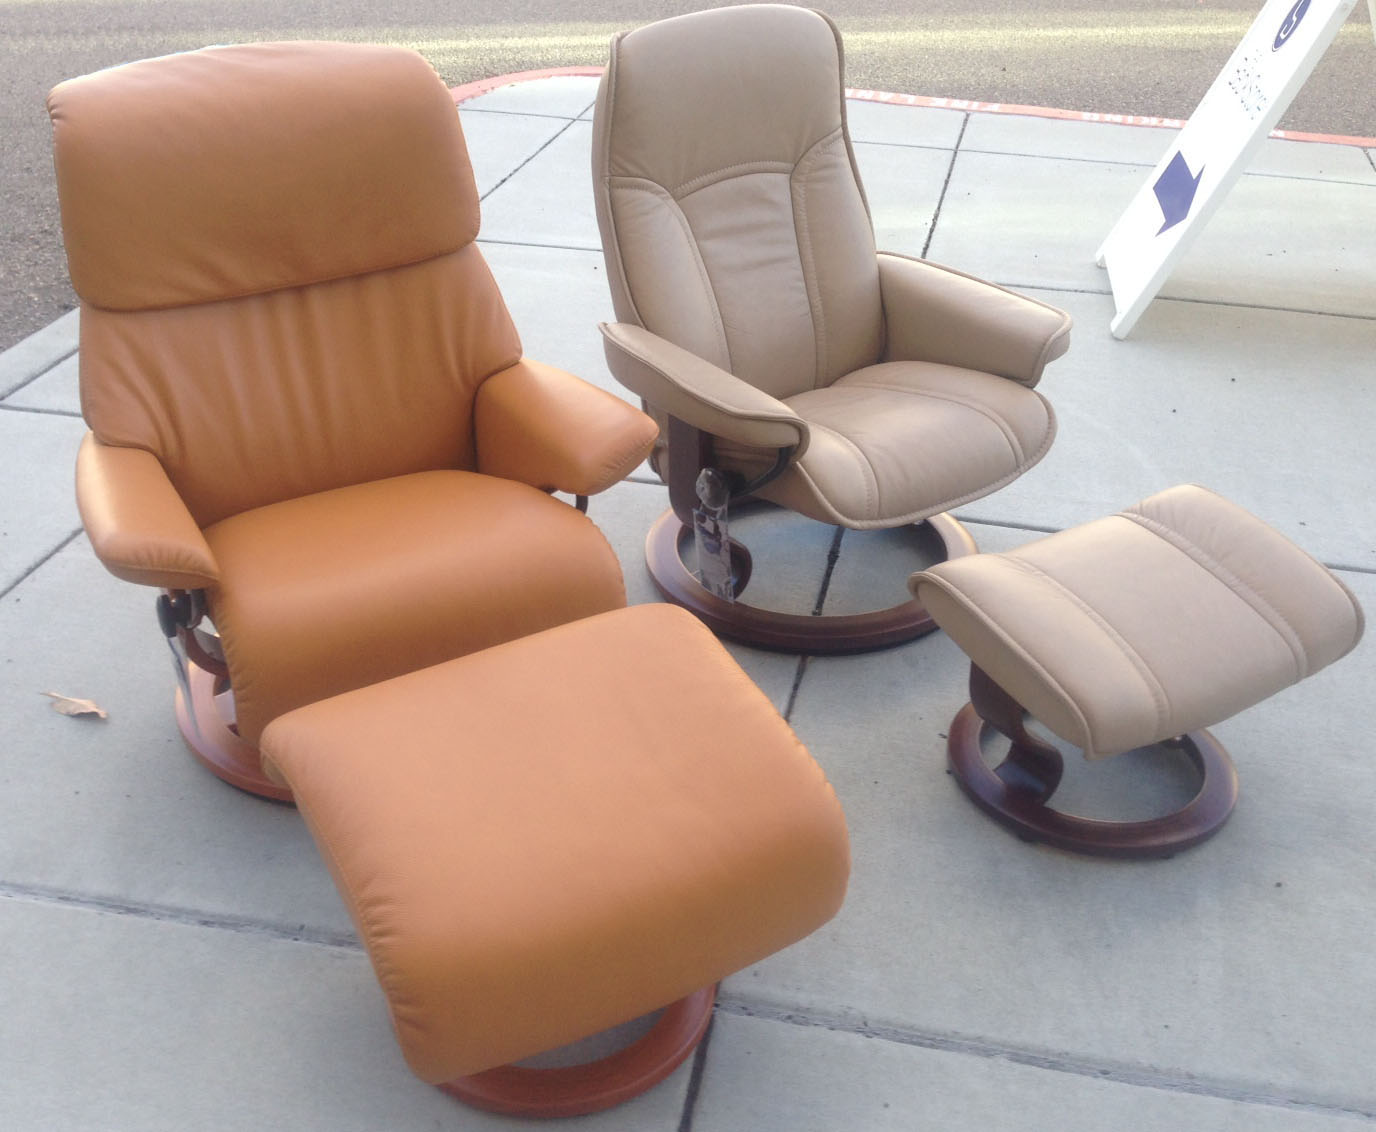 Awesome Stressless Spirit Large Dream Cori Tan Leather Recliner Chair And Ottoman By Ekornes Lamtechconsult Wood Chair Design Ideas Lamtechconsultcom